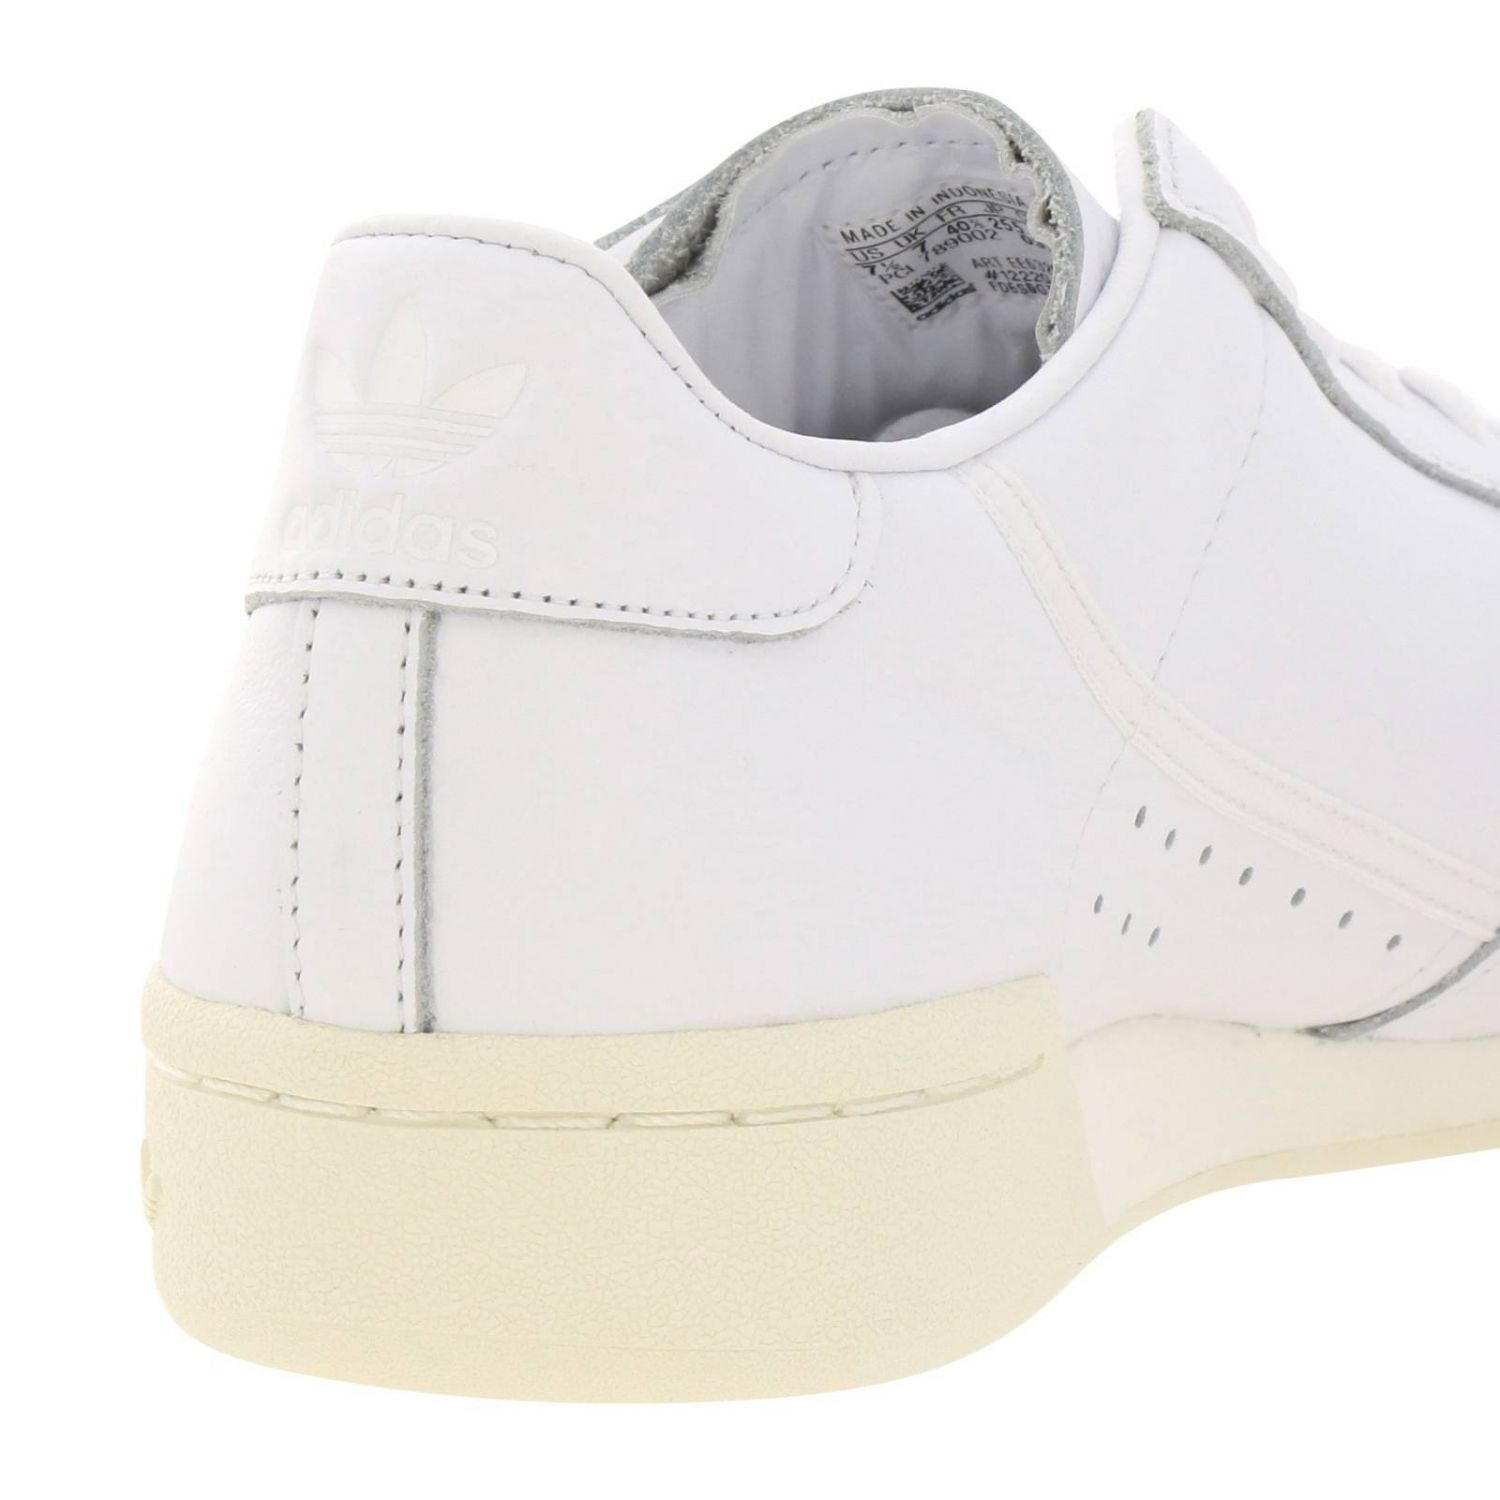 Sneakers Adidas Originals: Adidas Originals 80 Sneakers in smooth leather with holes white 4